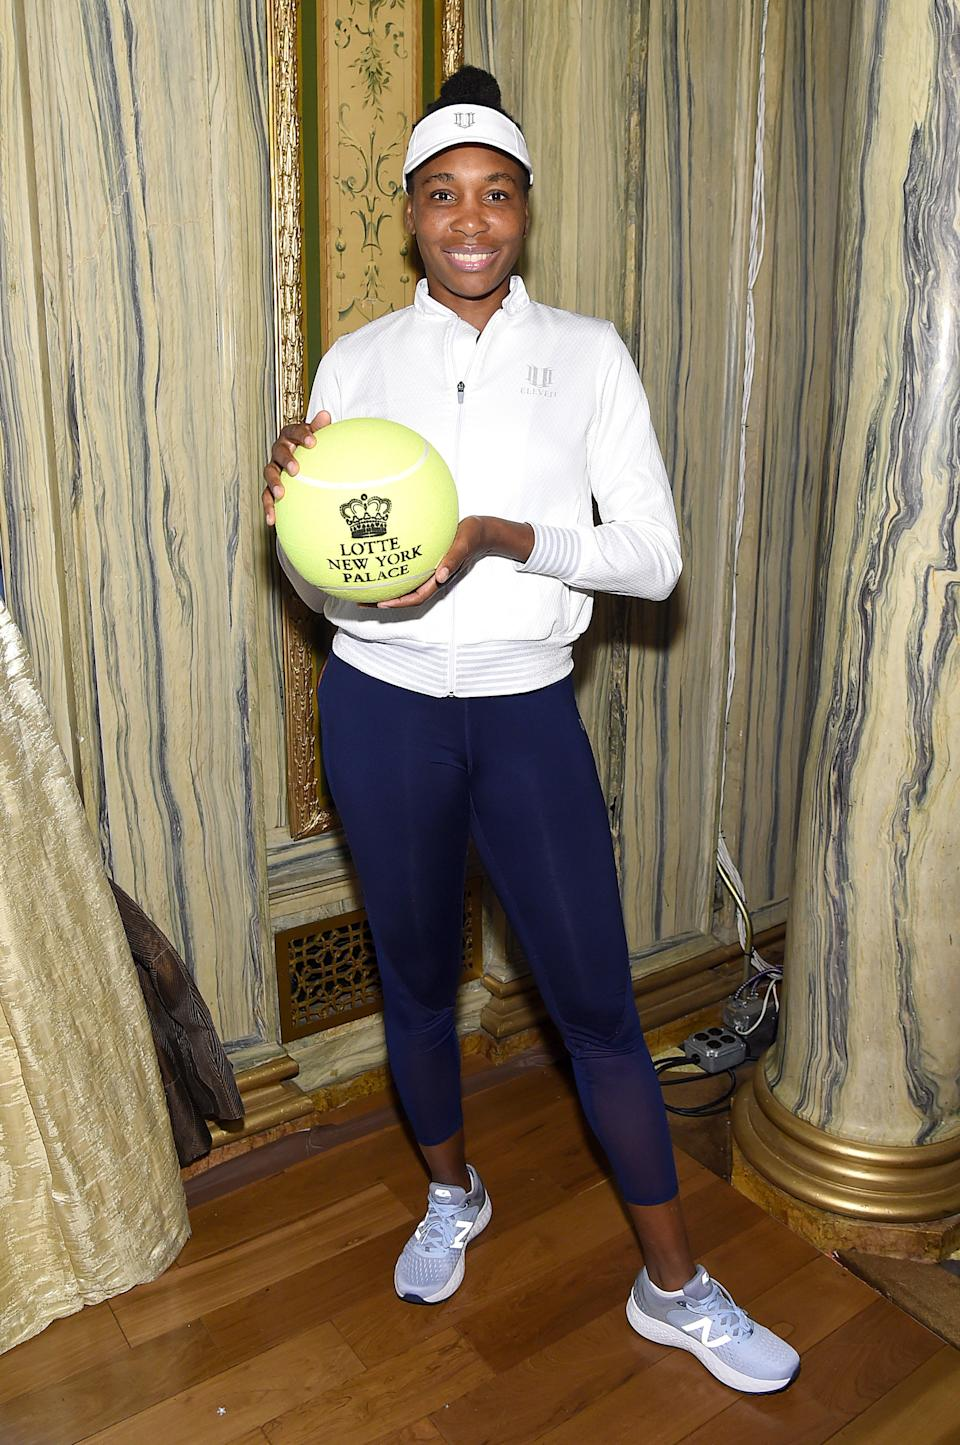 Venus posed with an oversized autograph-ready tennis ball ahead of the mini tournament.